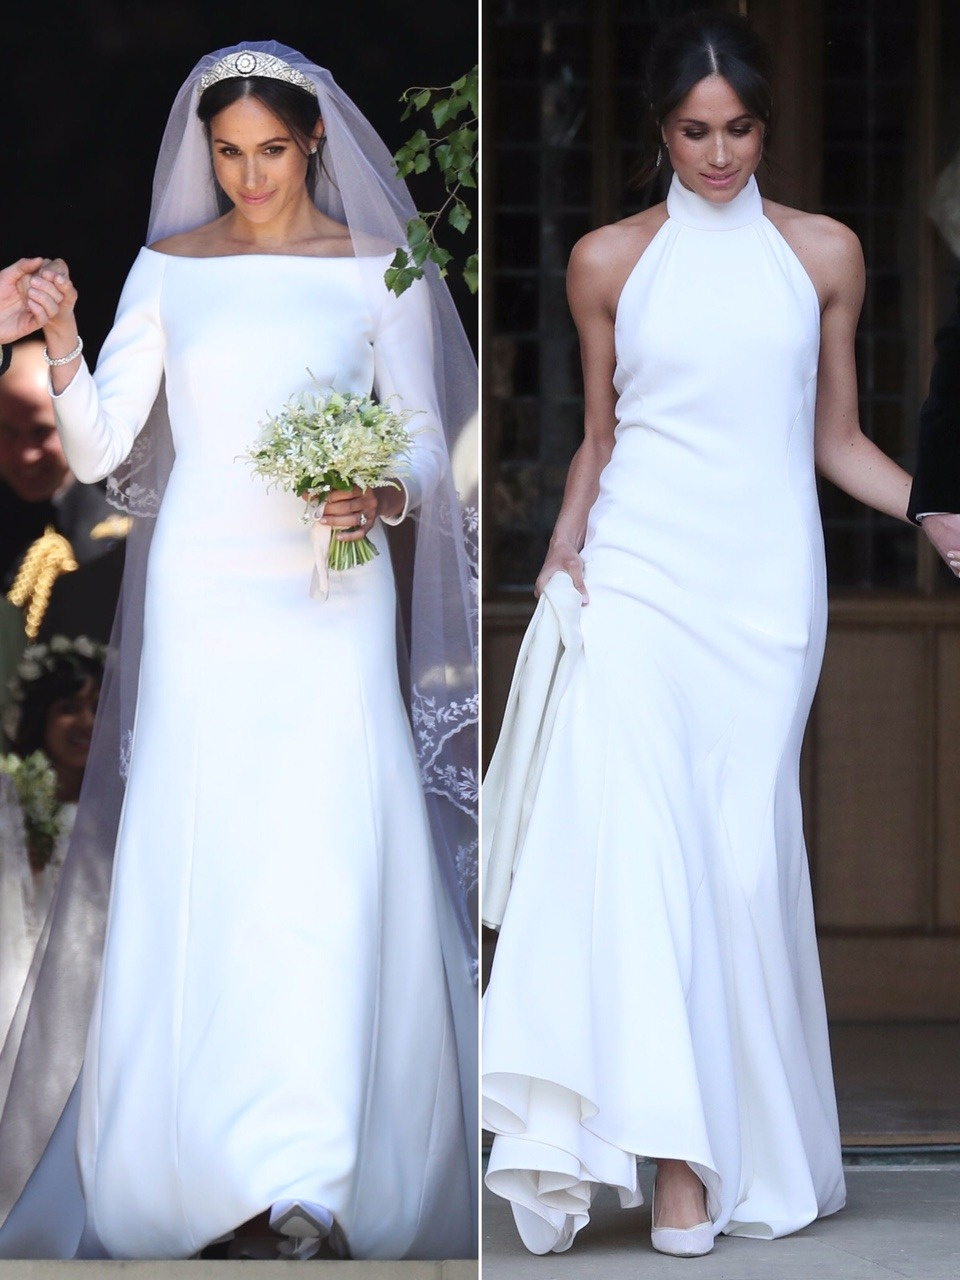 Meghan Markle two wedding dresses